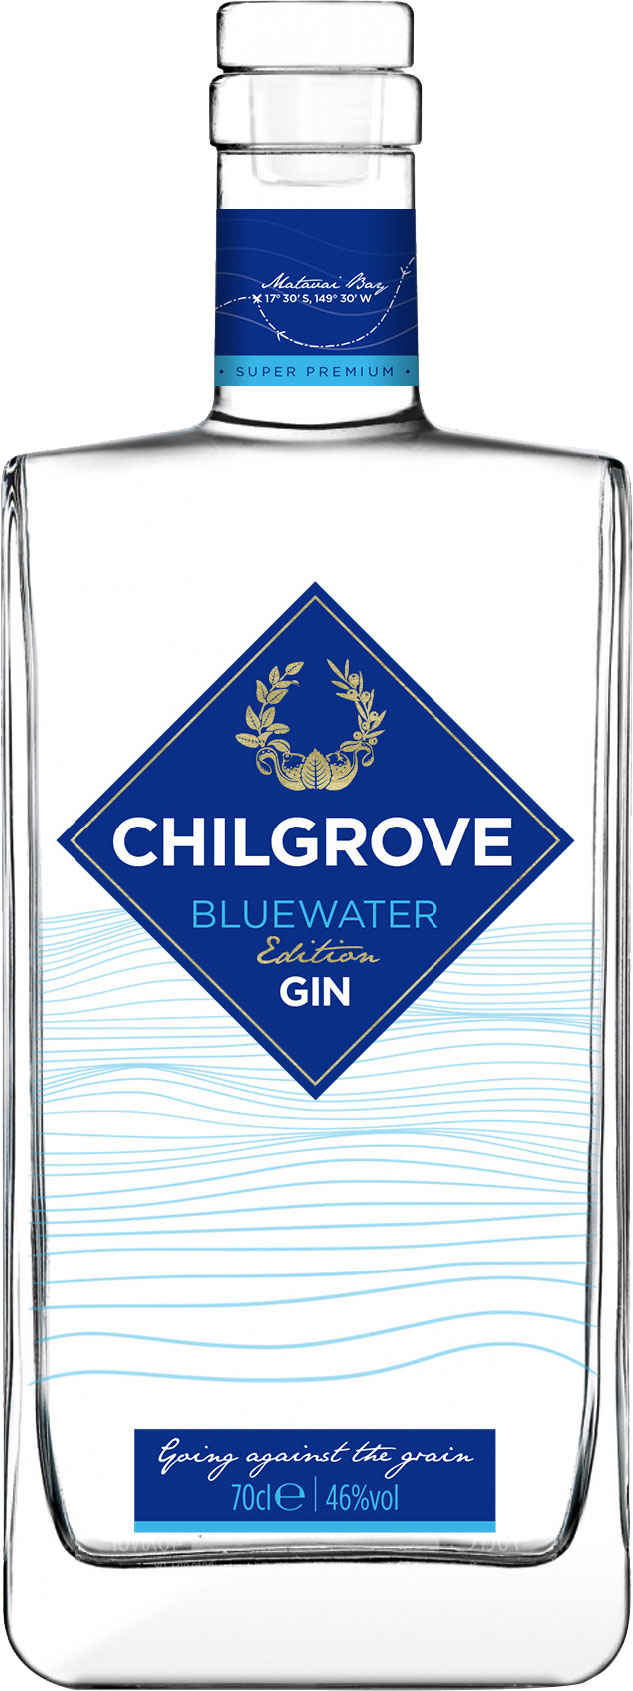 Chilgrove Gin Bluewater Edition